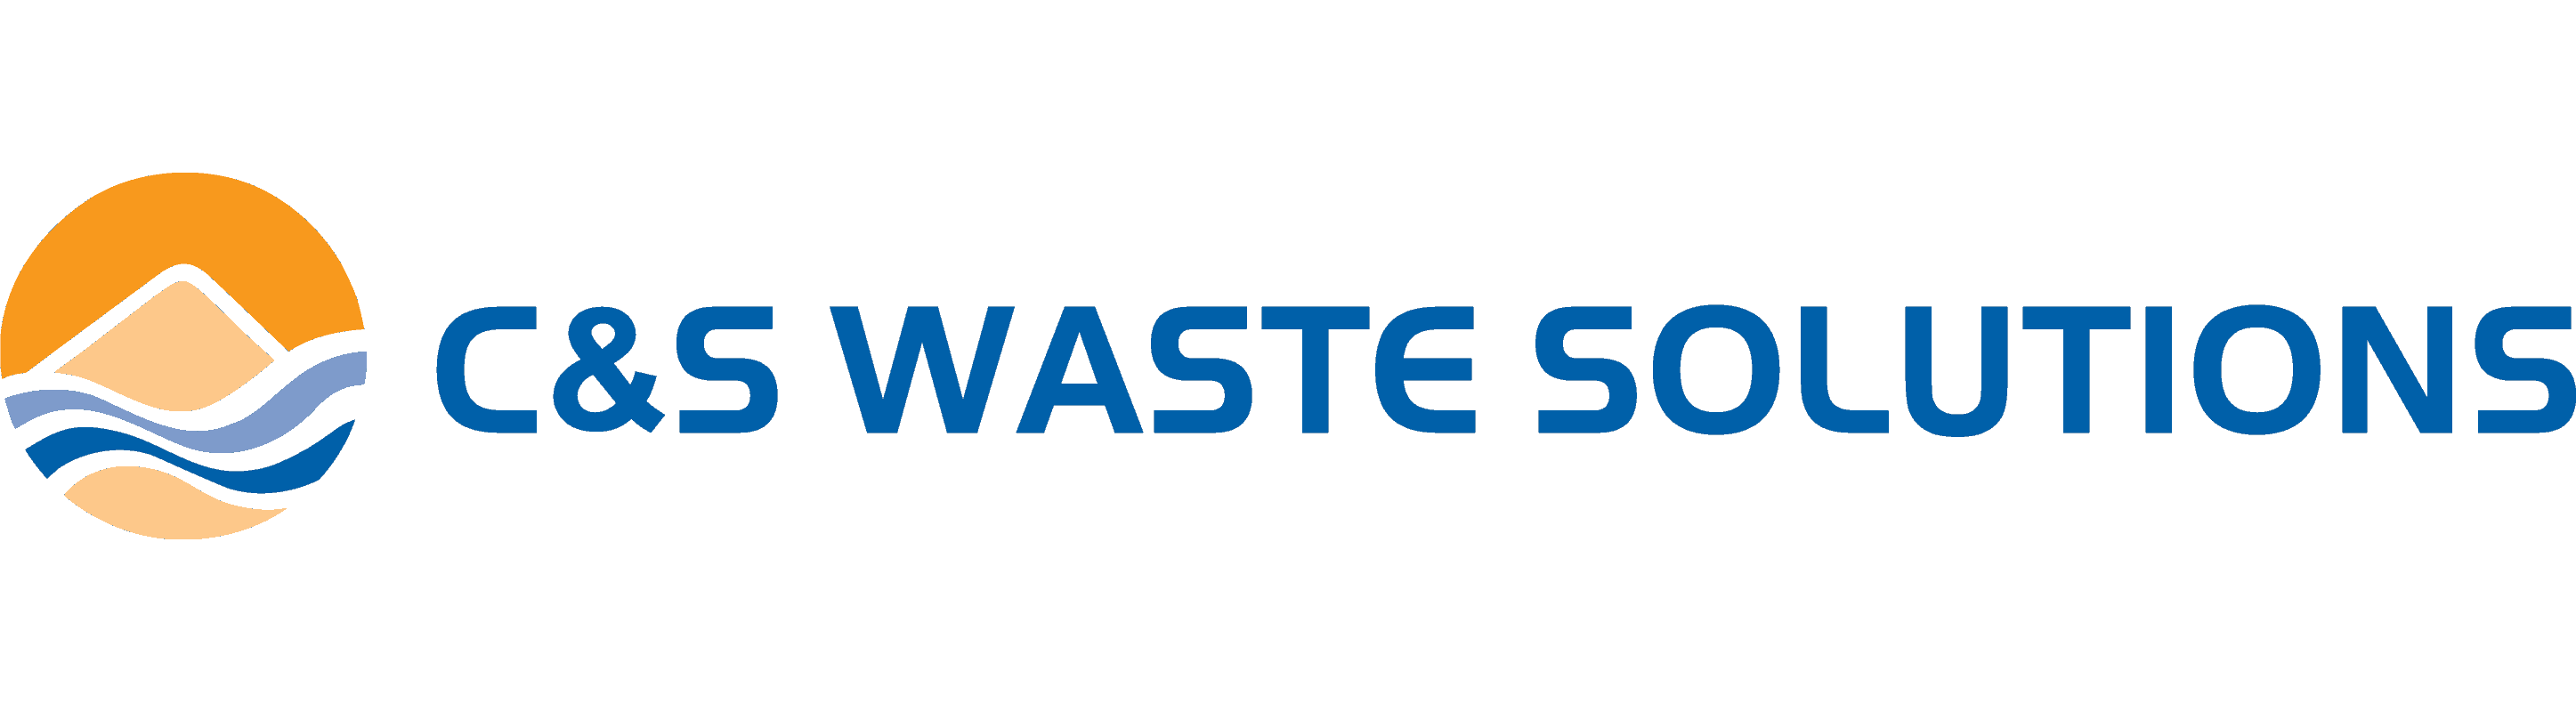 C&S Waste Solutions